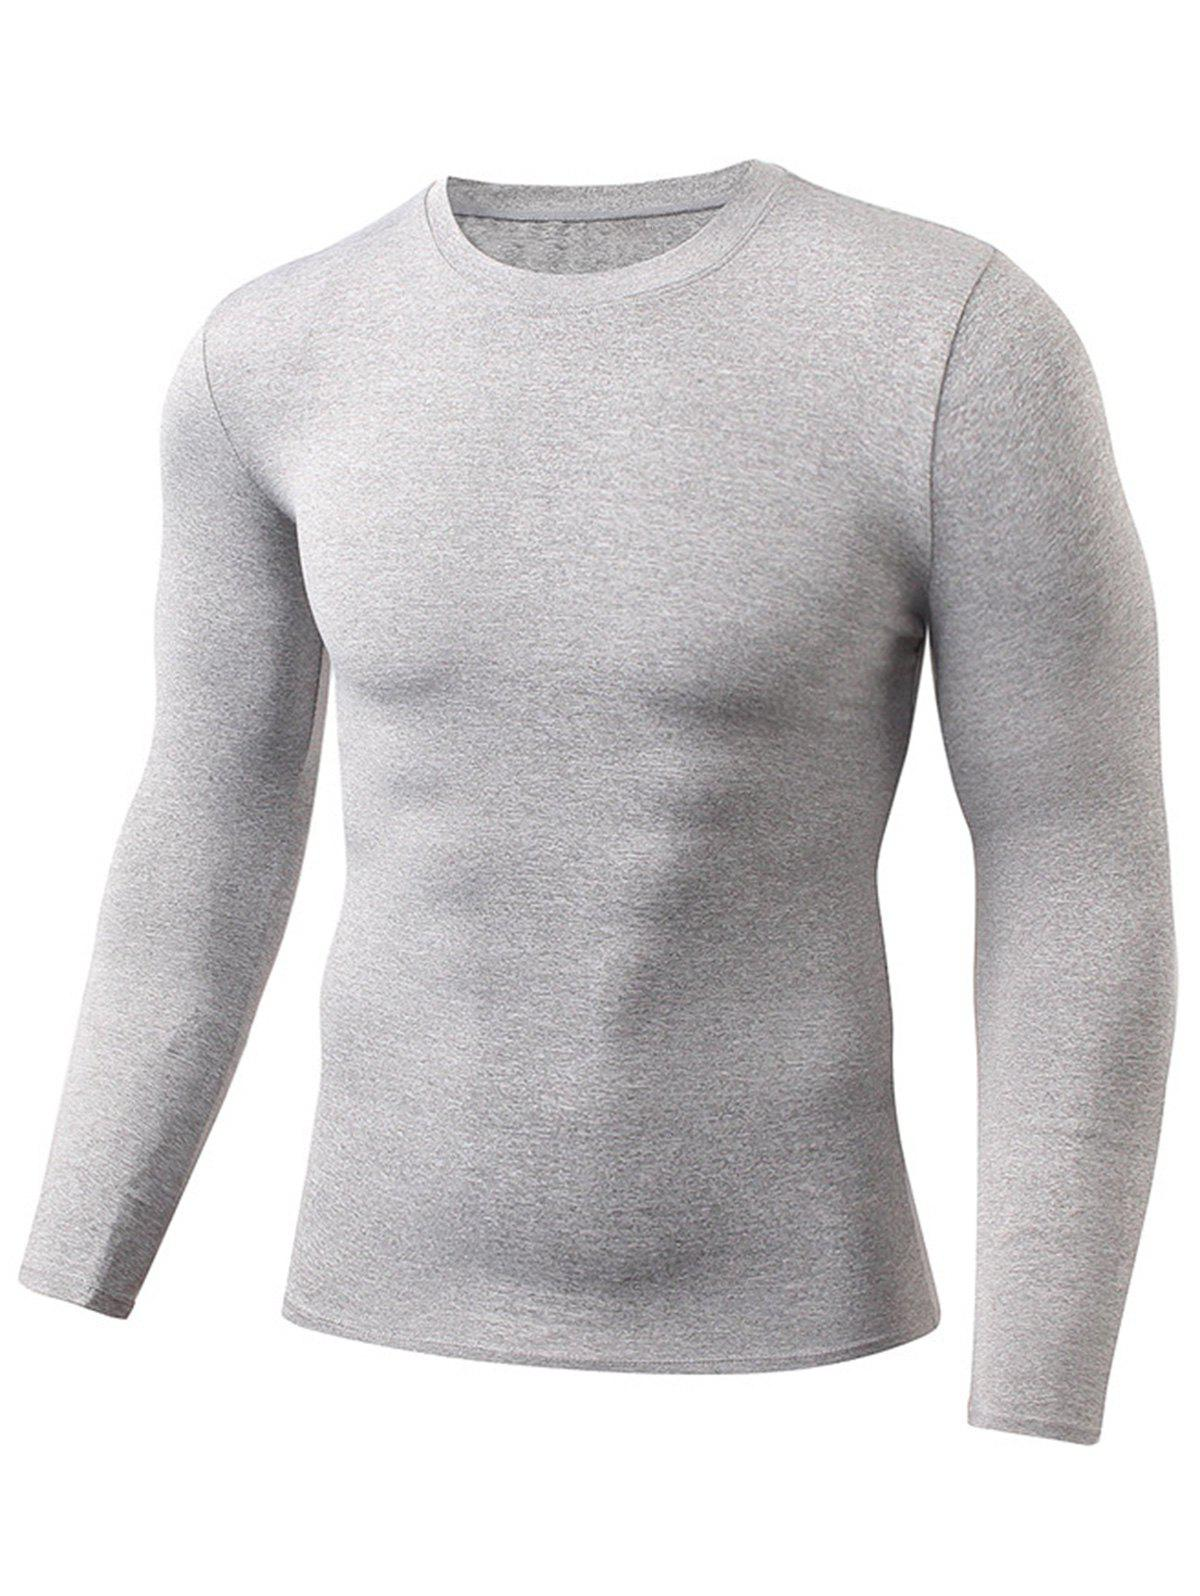 Fitted Quick Dry Gym Long Sleeve T-shirt - LIGHT GRAY M